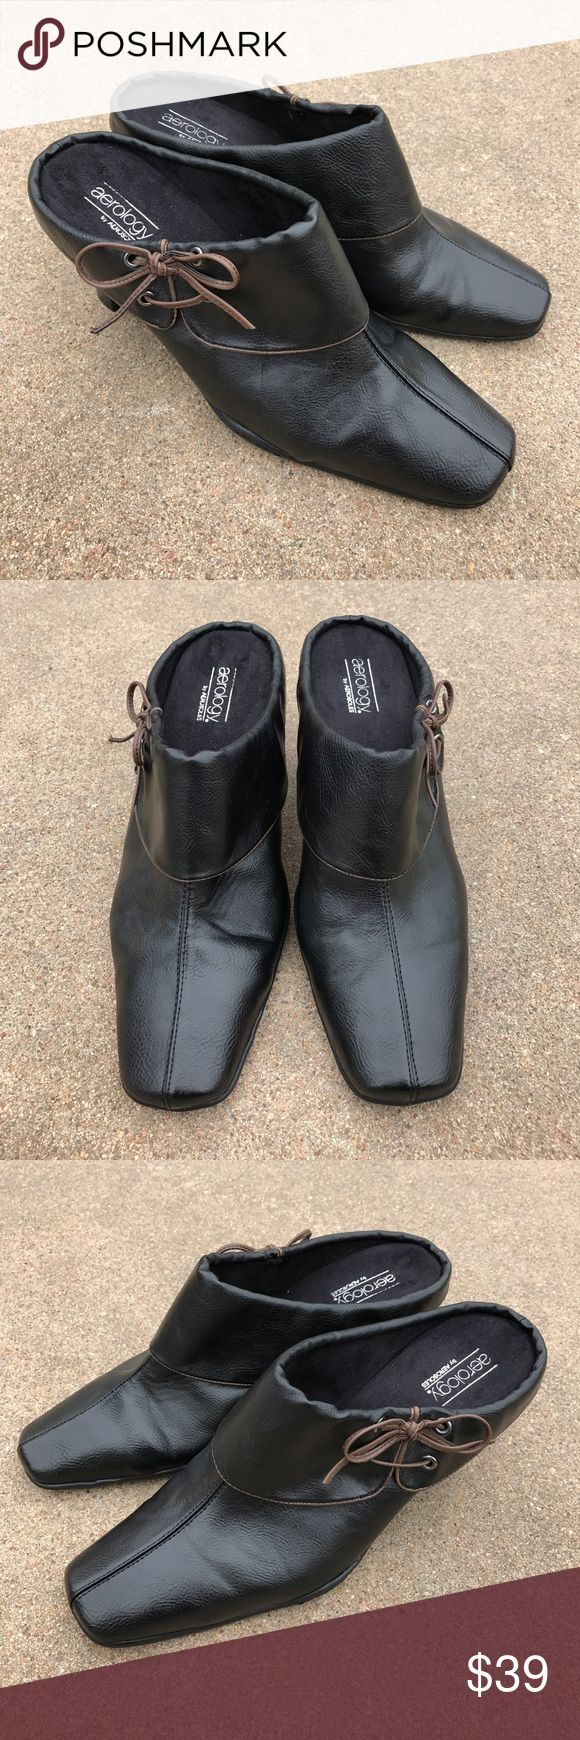 """aerology by AEROSOLES Women's Shoes Mules Clogs Lovely aerology by AEROSOLES women's shoes mules clogs heels black synthetic leather, flap with bow tie. Size 11 W. The heels are 3 5/8"""" high. Condition. Pre-owned, very light wear, in very good condition. aerology by Aerology  Shoes Mules & Clogs"""